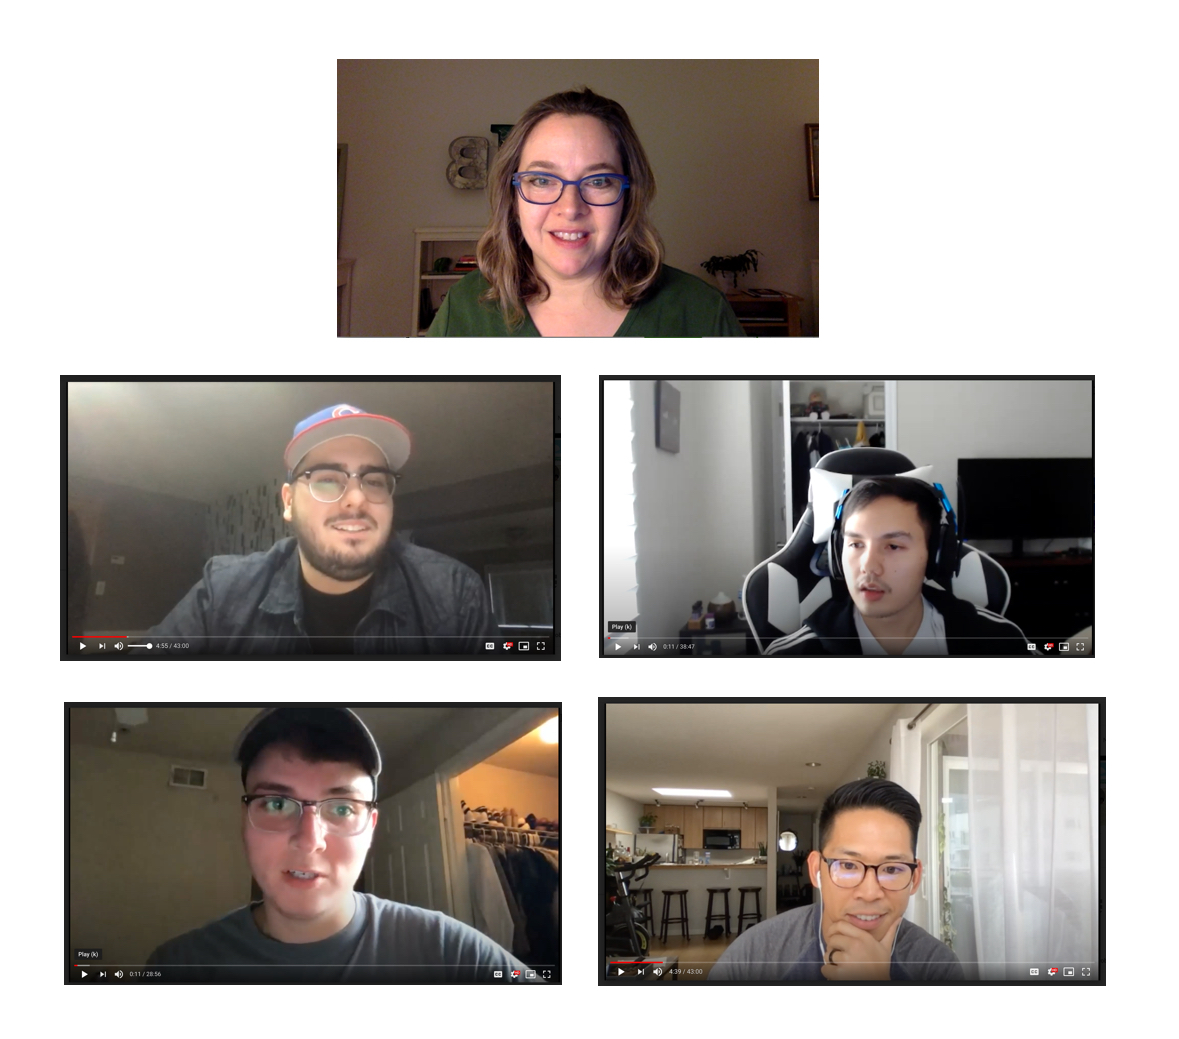 We always had a planOur team was on track to succeed right from the start because we delegated assignments, and used Trello to manage our workload. Our communication was timely in Slack, and working together remotely across two different time zones was seamless.